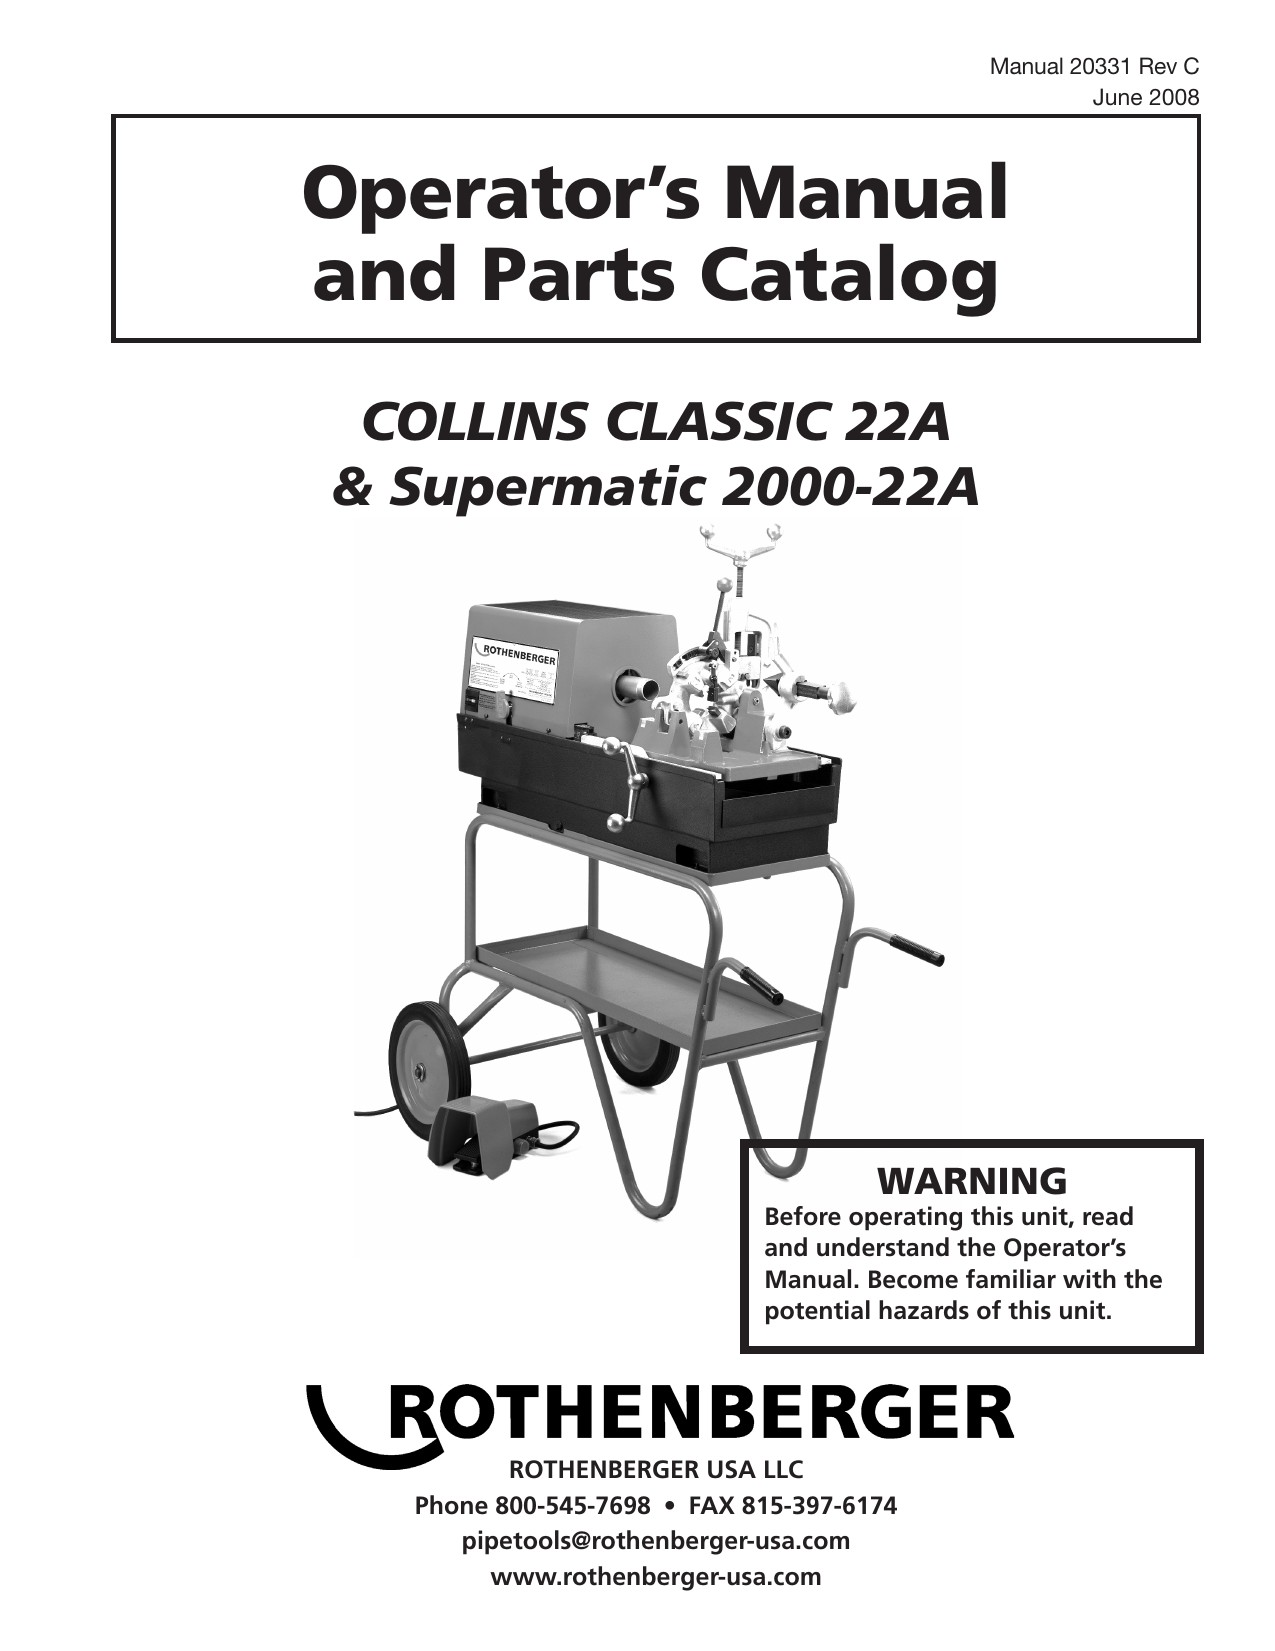 Electrolux 2100 Parts Diagram Operator S Manual and Parts Catalog Of Electrolux 2100 Parts Diagram